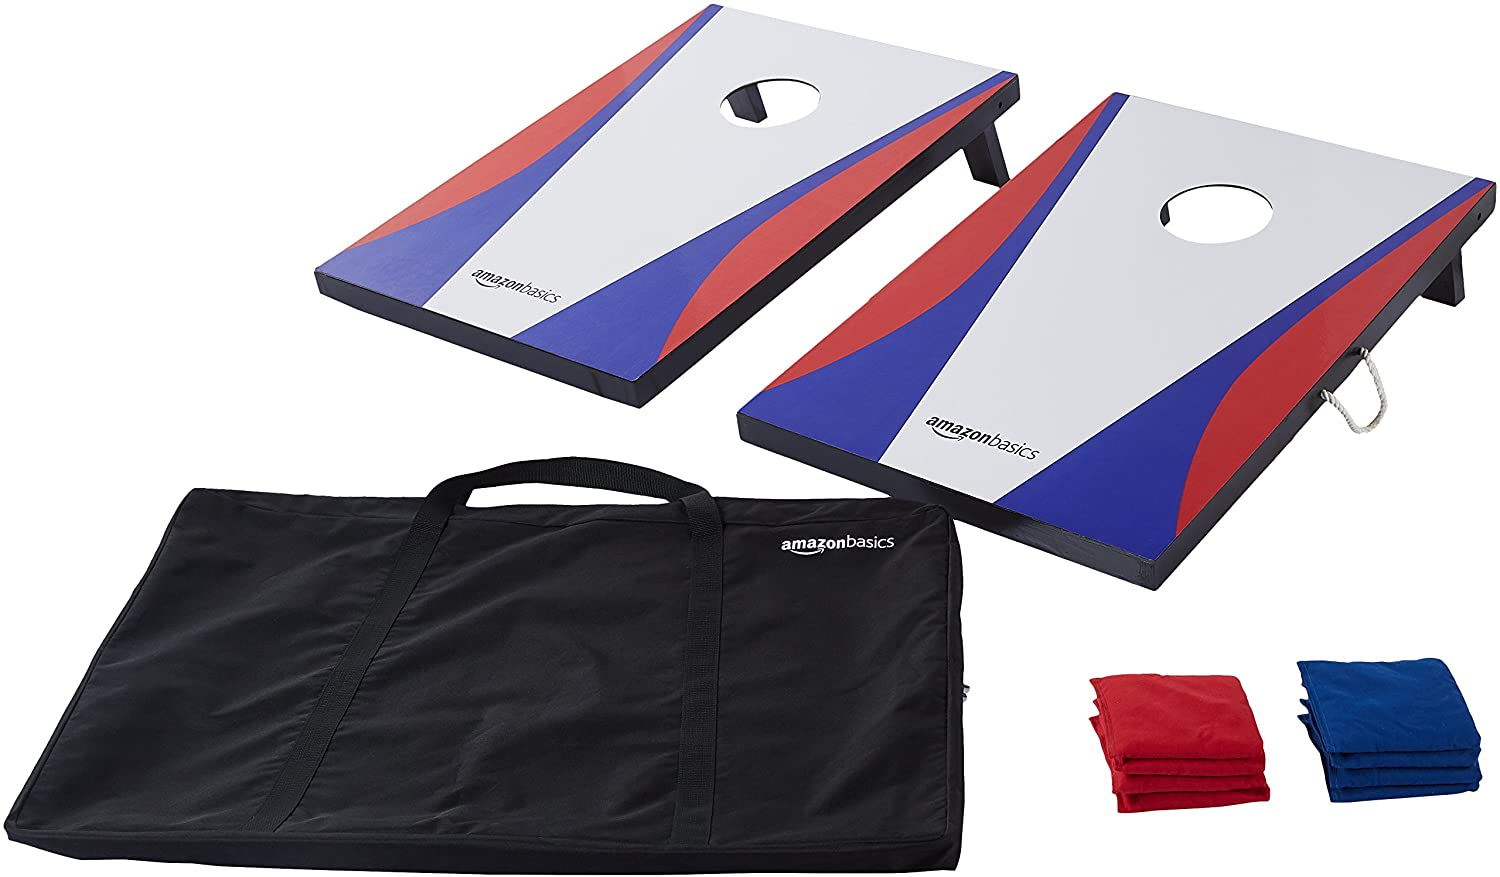 AmazonBasics Cornhole Set by AmazonBasics